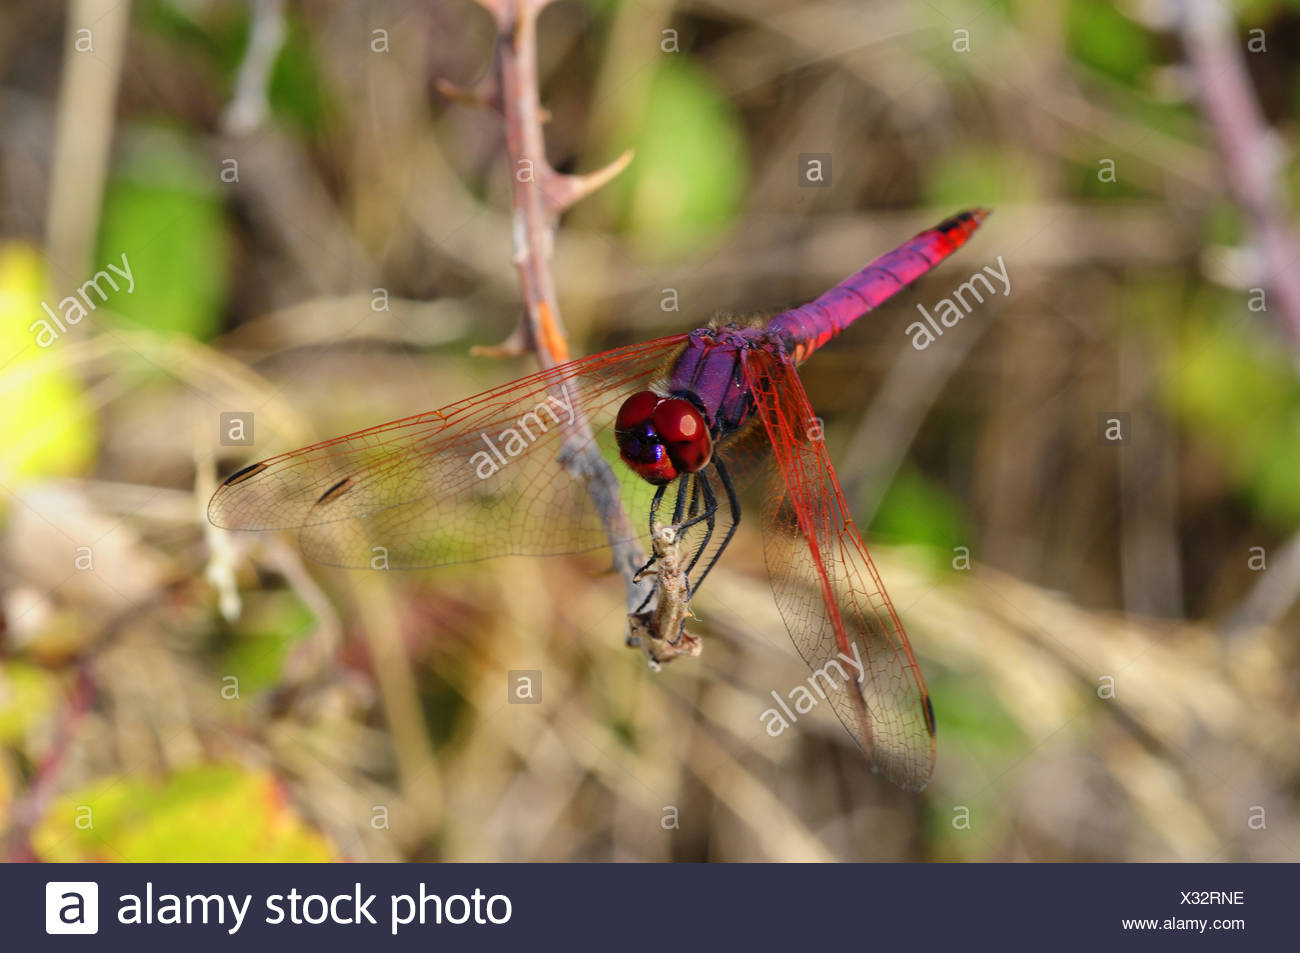 Scarlet Dragonfly, Crocothemis erythraea, male Stock Photo